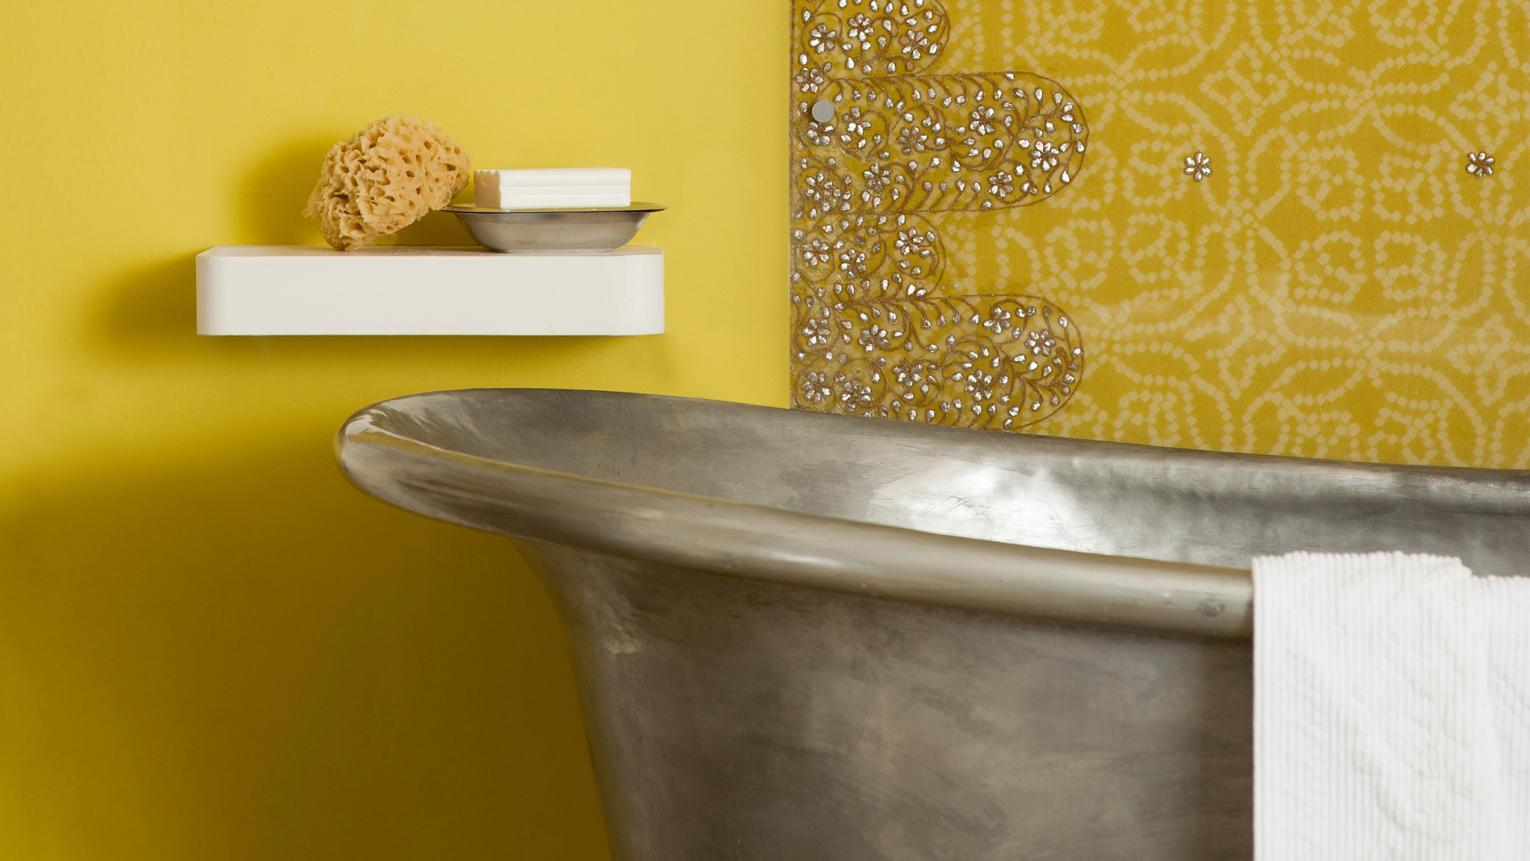 Is your bathroom lacking natural sunlight? The key is to combine light, crisp colour schemes with warm lighting.